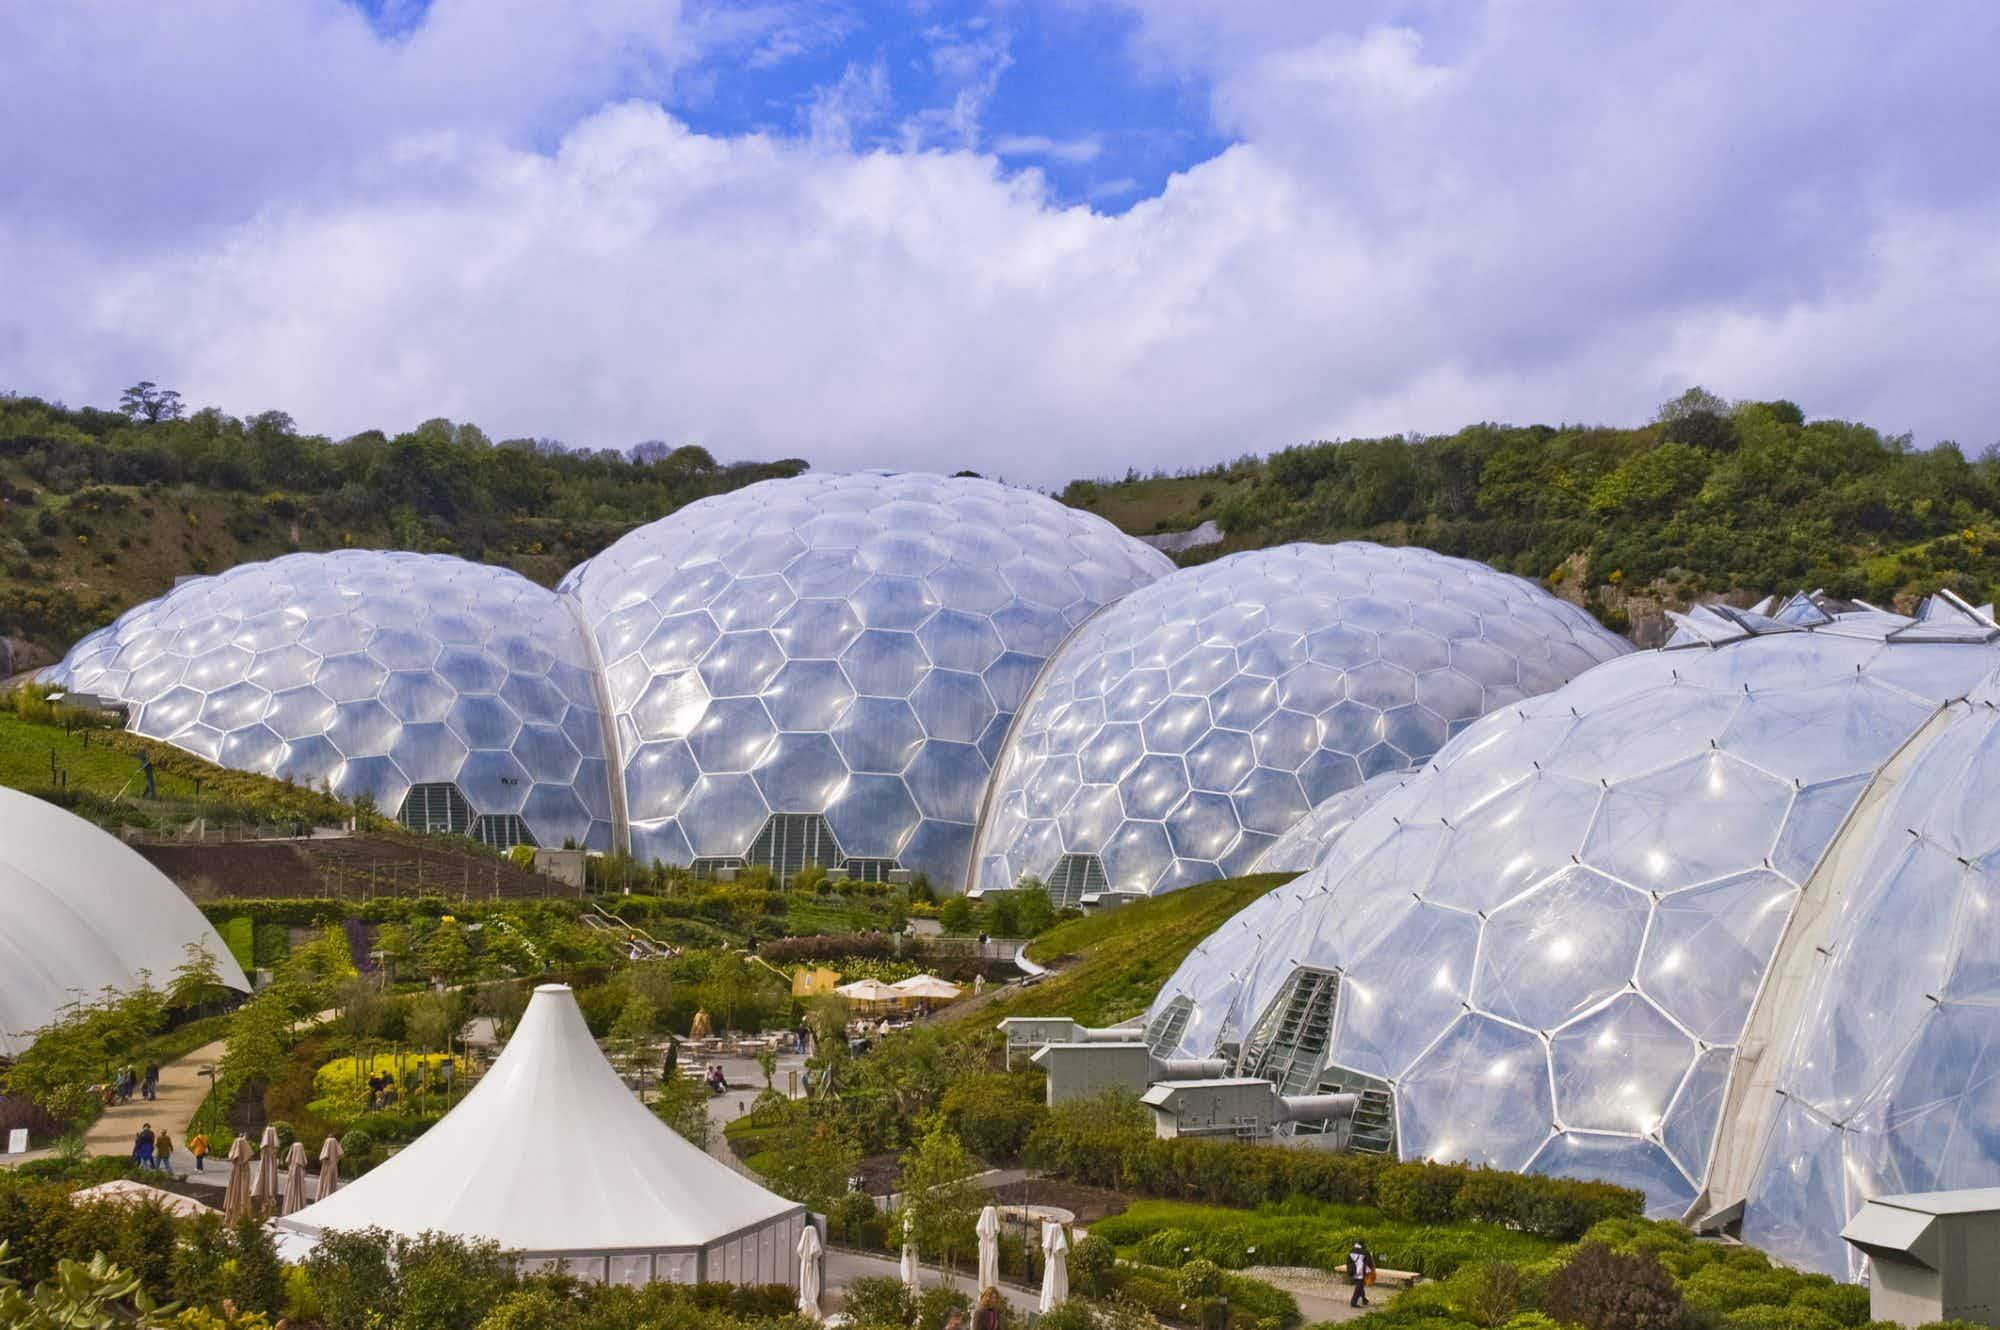 New Zealand's Christchurch could be about to get an Eden Project